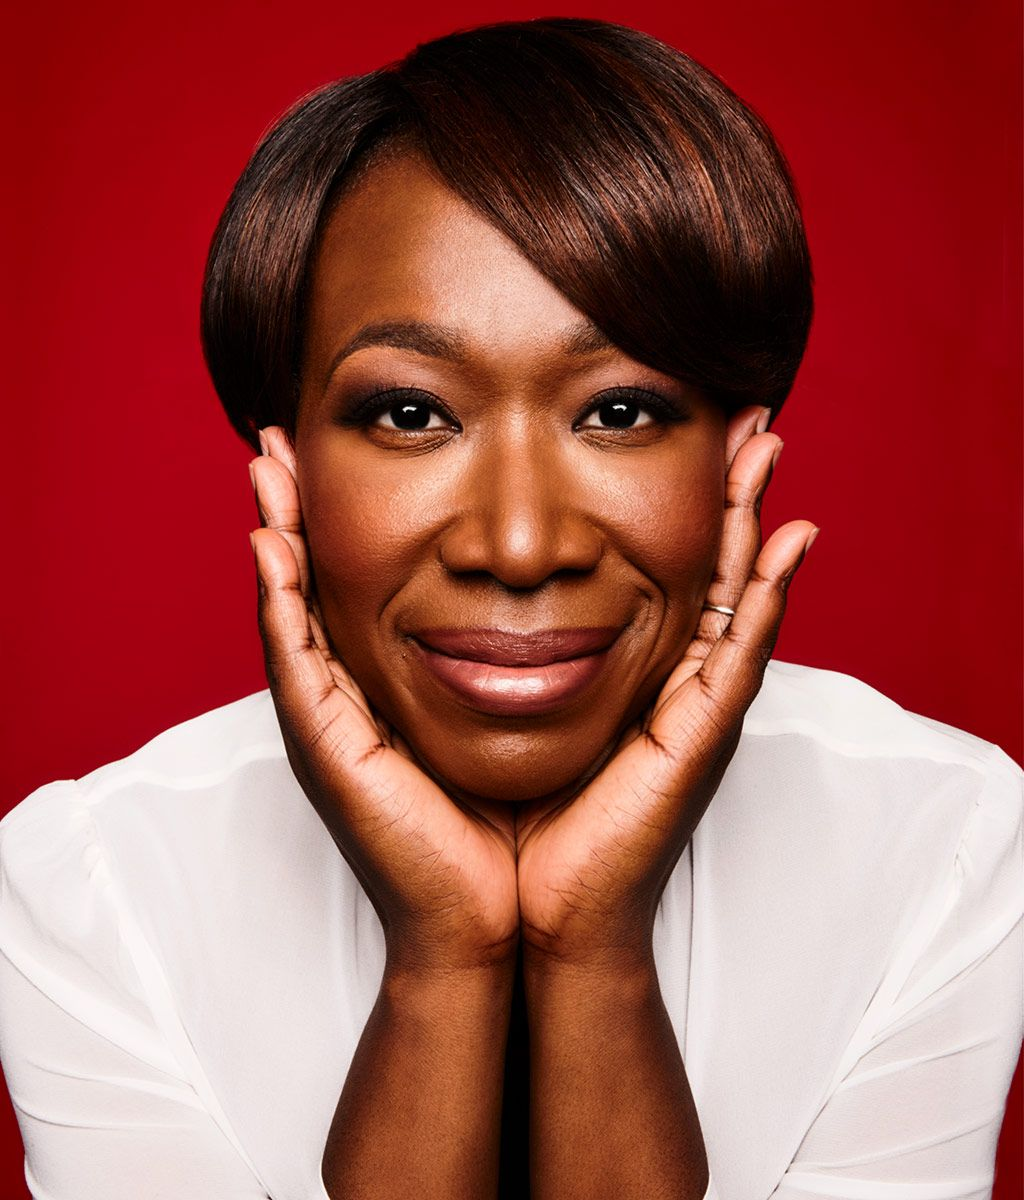 joy reid wants to argue with you